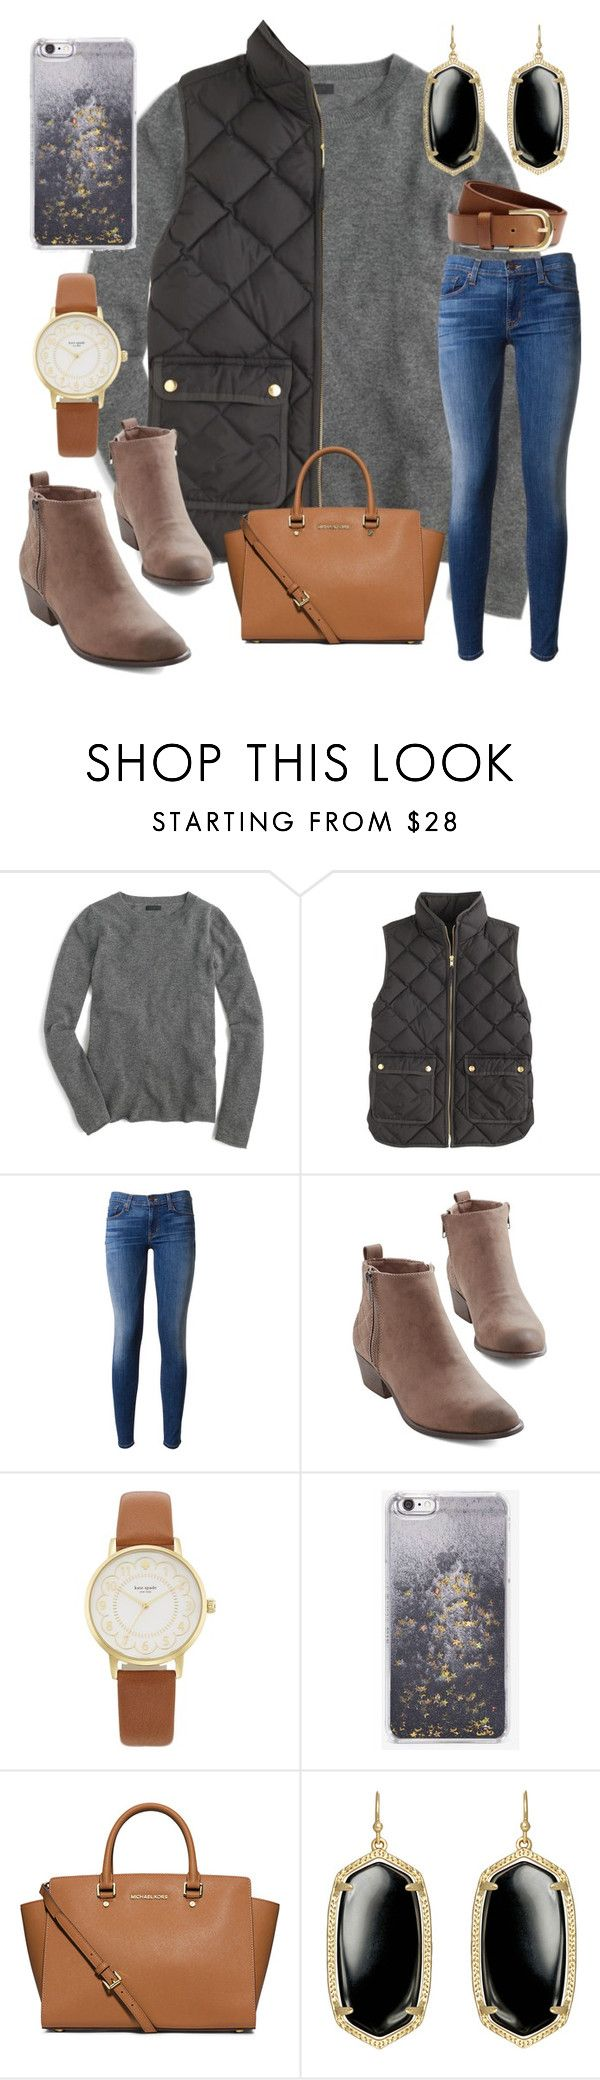 """went to church this morning"" by ctrygrl1999 ❤ liked on Polyvore featuring J.Crew, Hudson, Kate Spade, Skinnydip, MICHAEL Michael Kors, Kendra Scott and H&M"